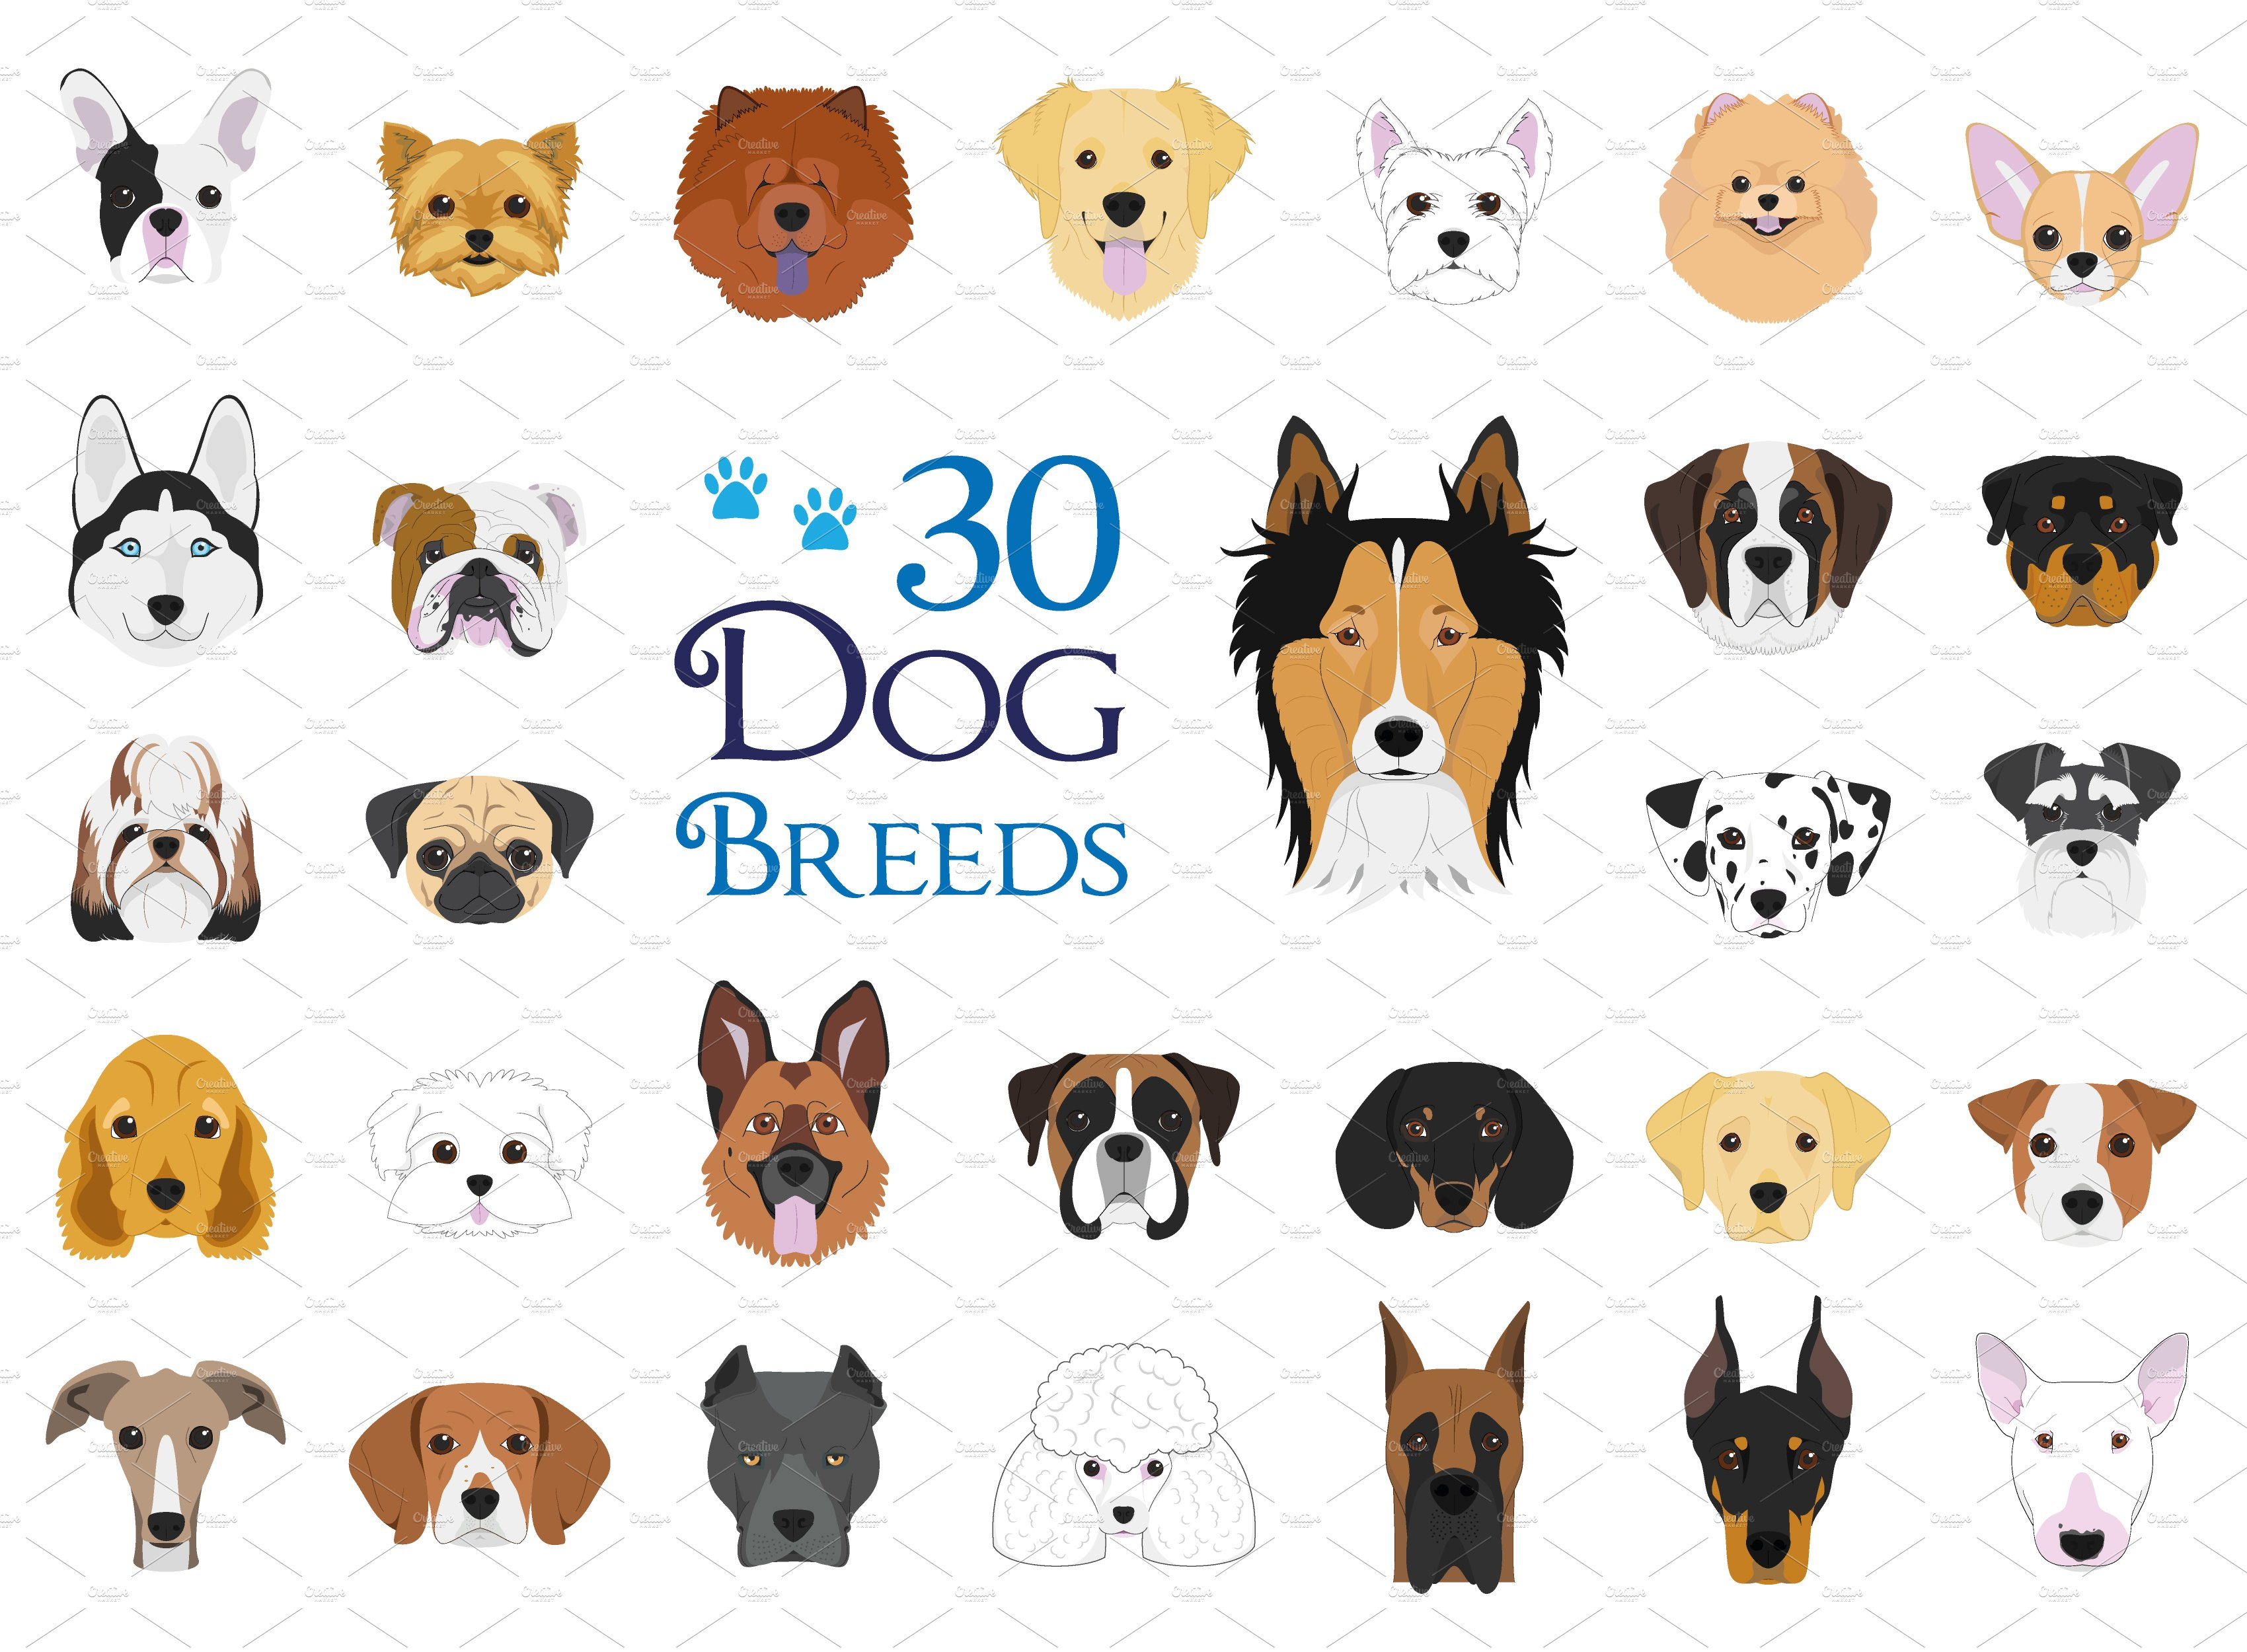 30x dog breeds vector collection illustrations for Different types of puppies breeds